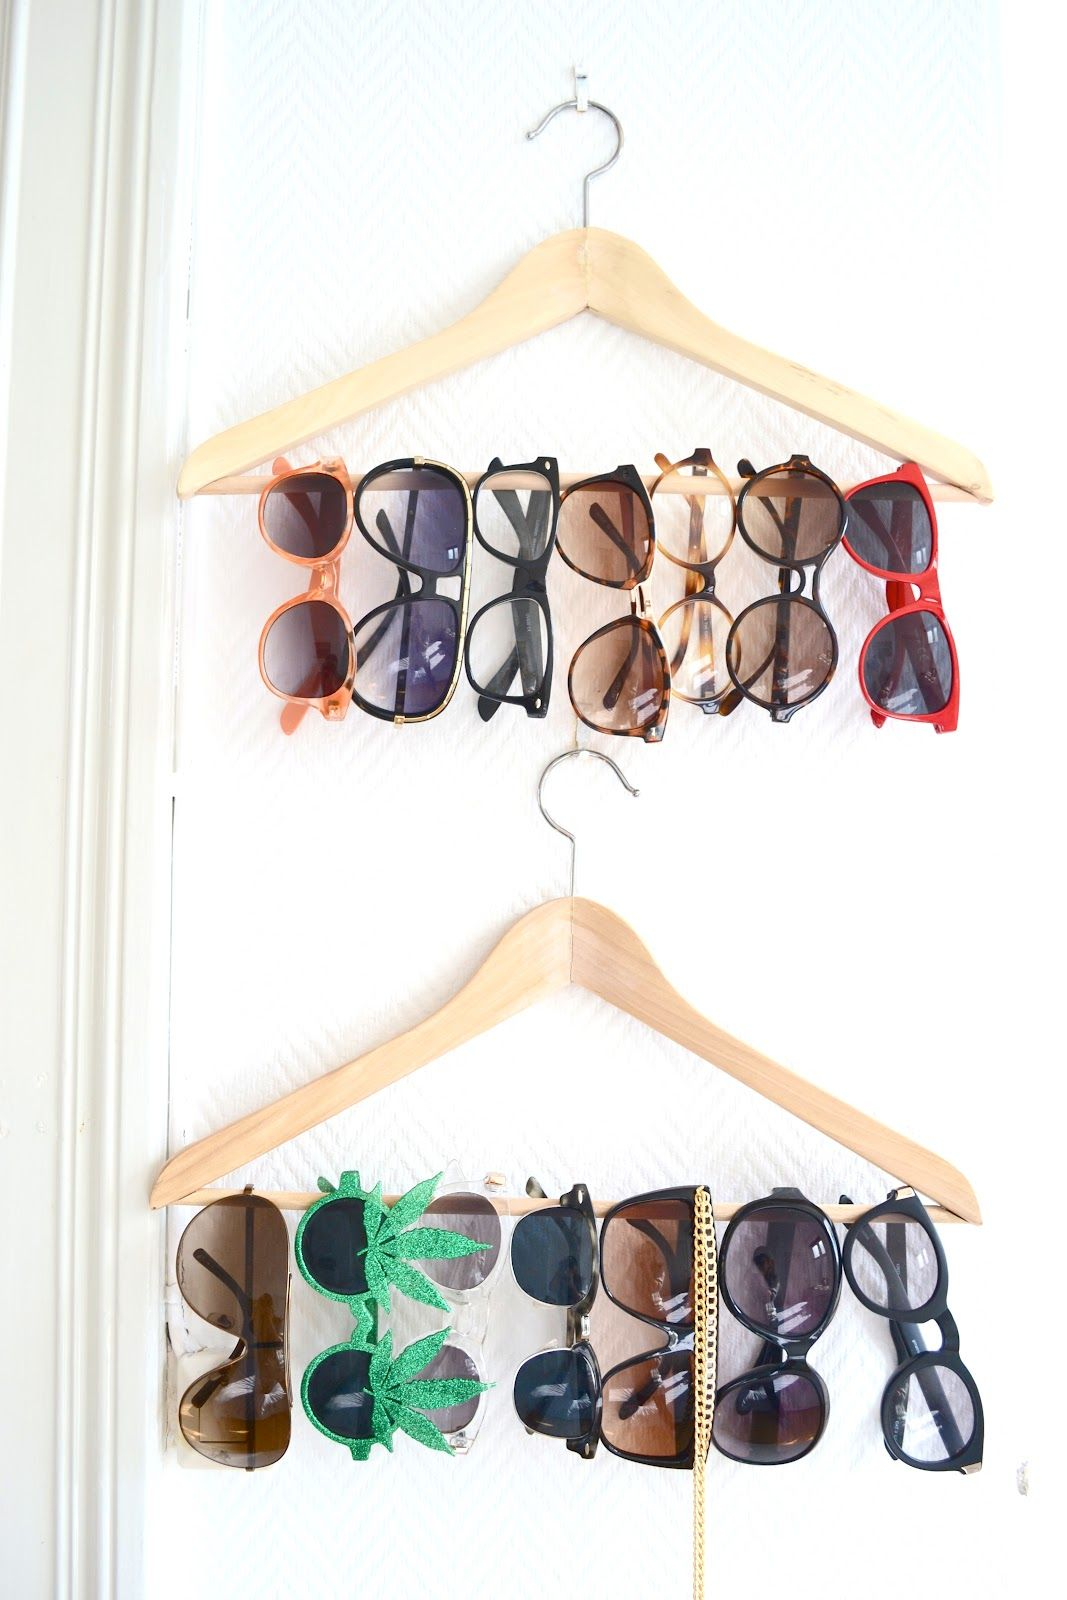 3b8a0e3d7 This would be a great way to display your sunglasses collection at home or  as part of a retail display at an optical store.